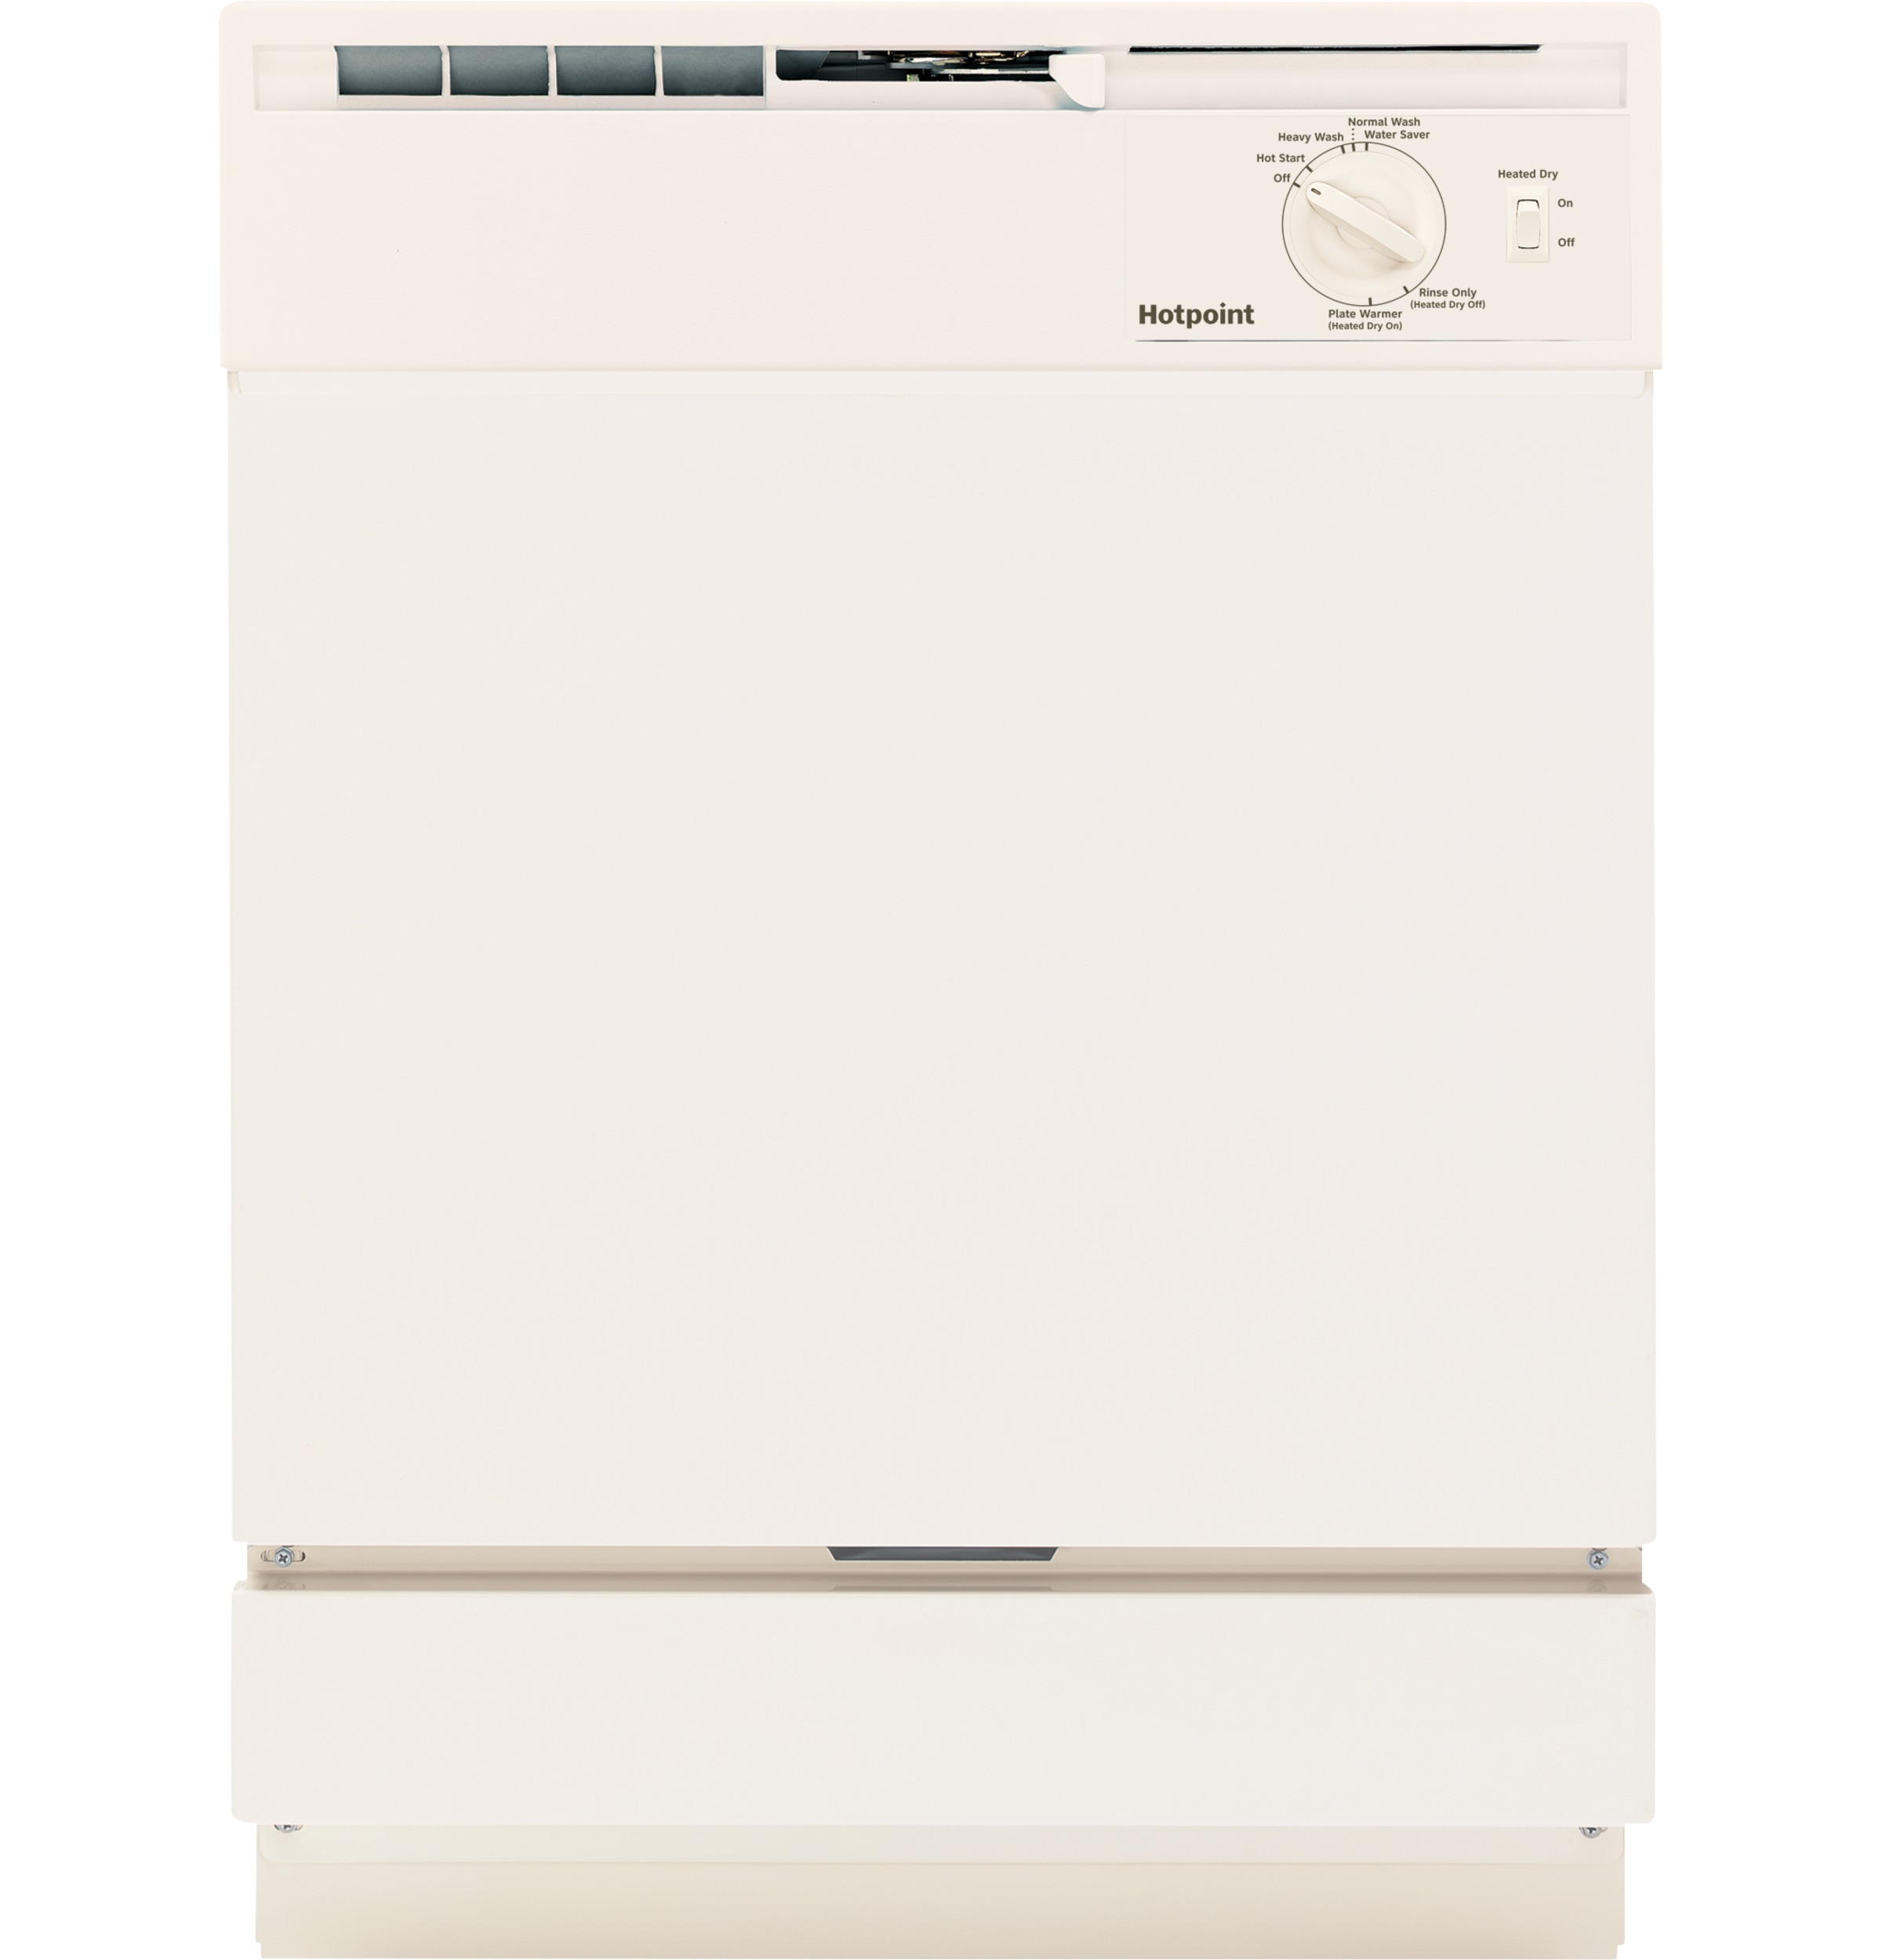 Hotpoint Hotpoint® Built-In Dishwasher